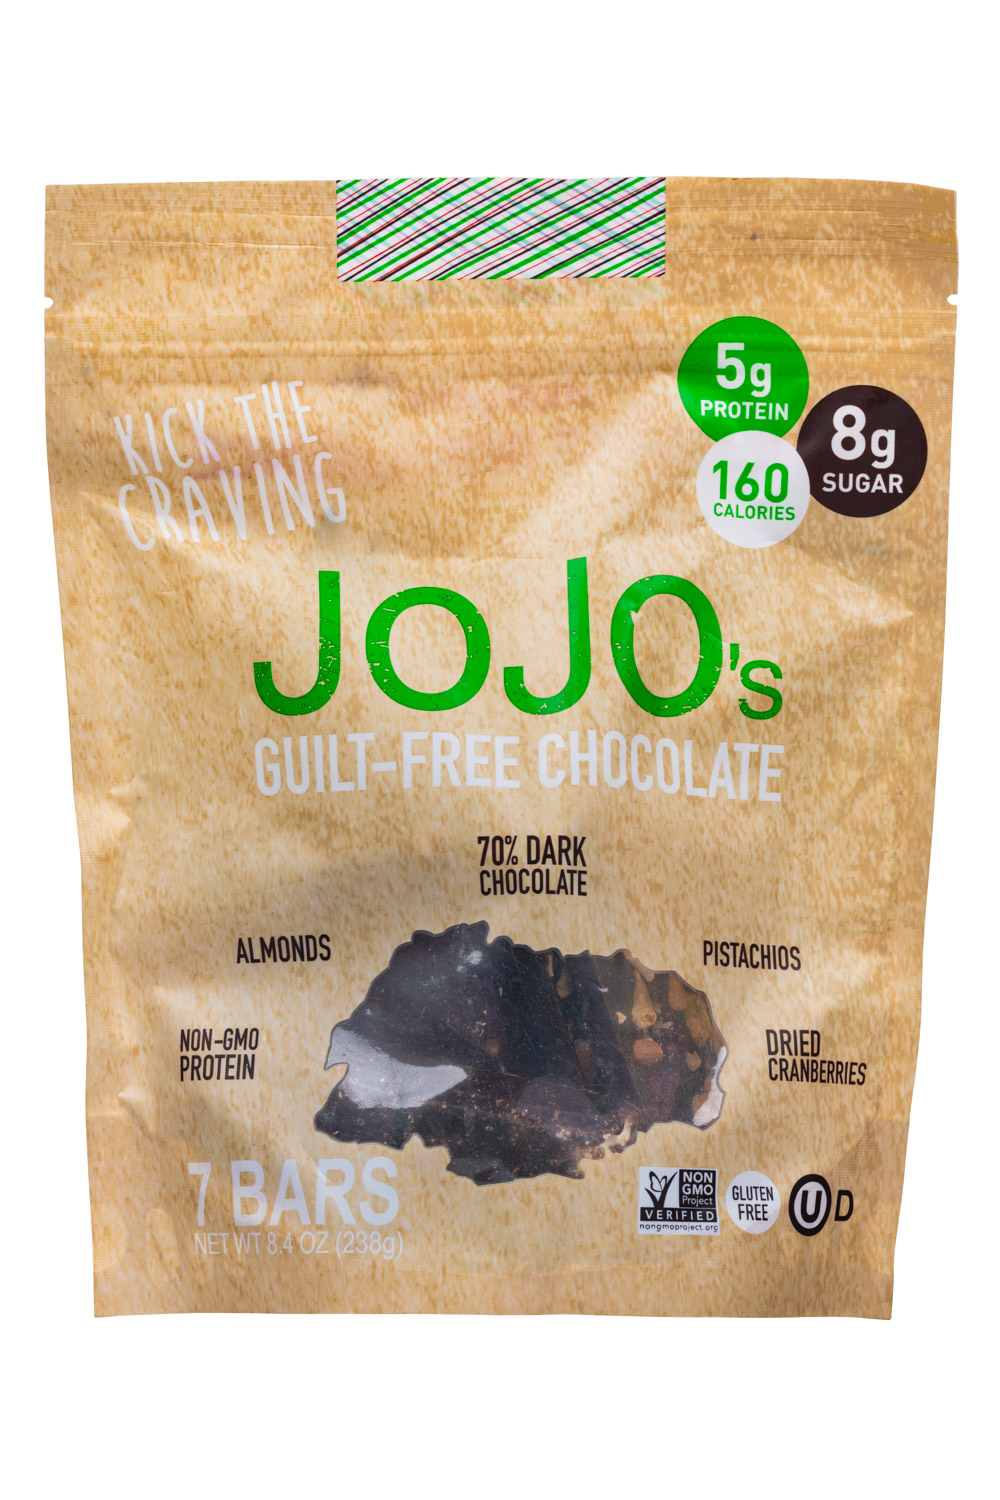 JoJo's Peanut Butter Delight (7 bars bag)